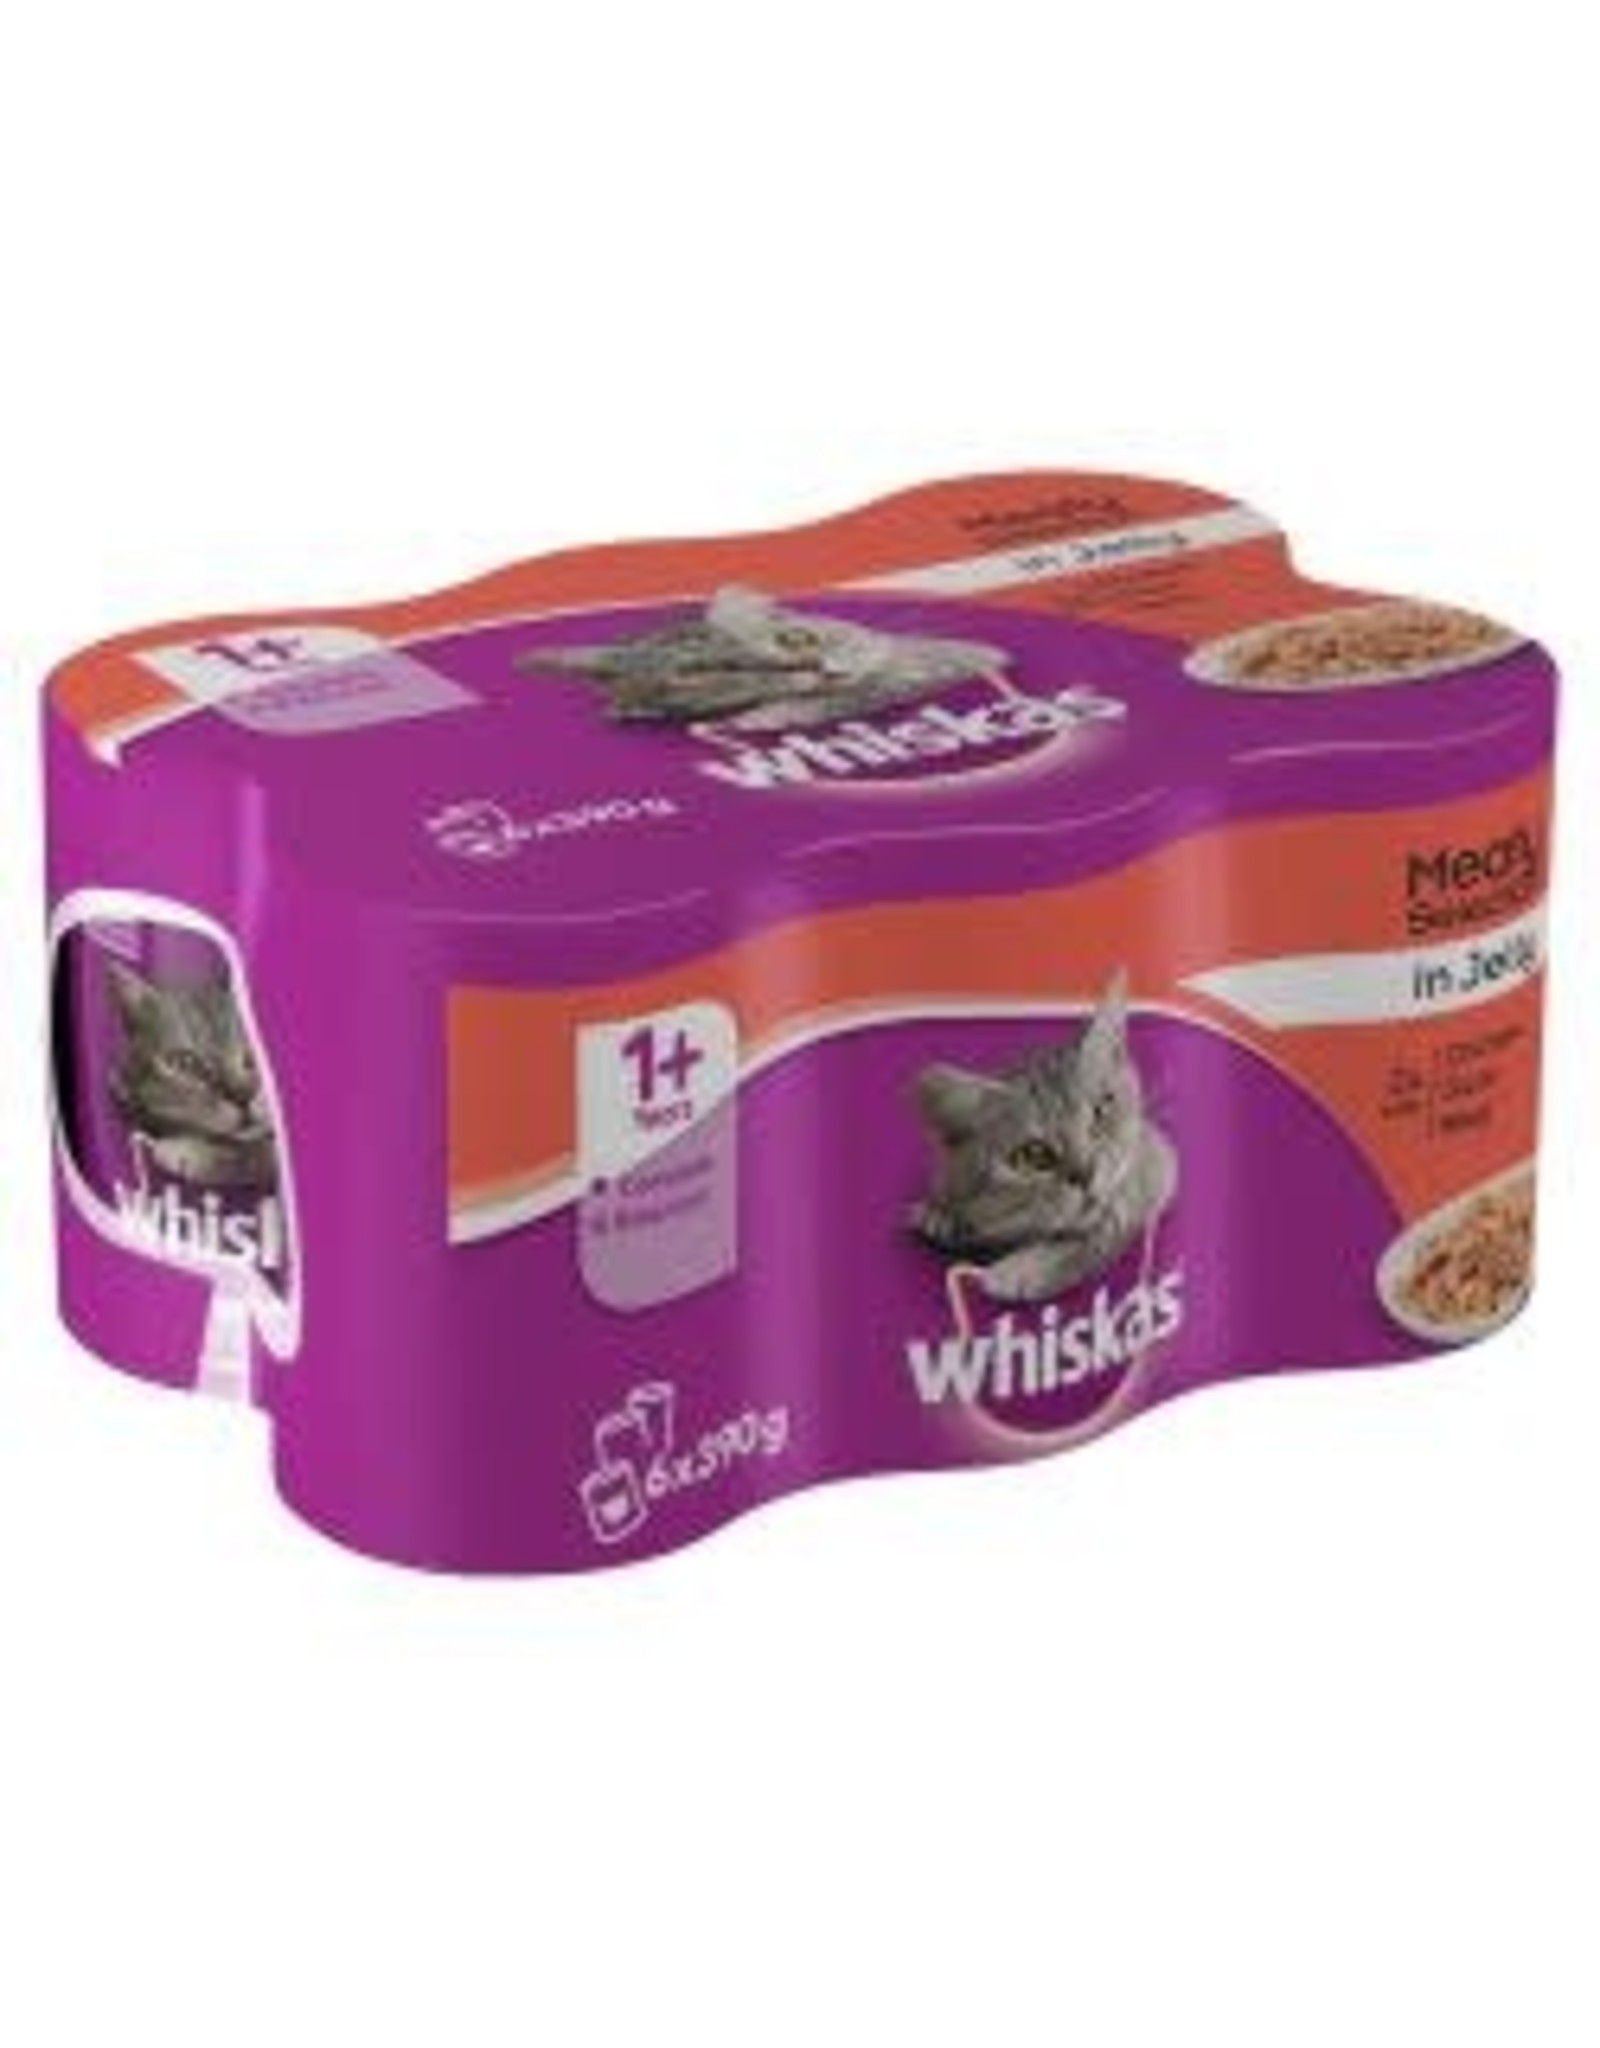 Whiskas Whiskas 1+ Can Meat Selection 6 x 390g